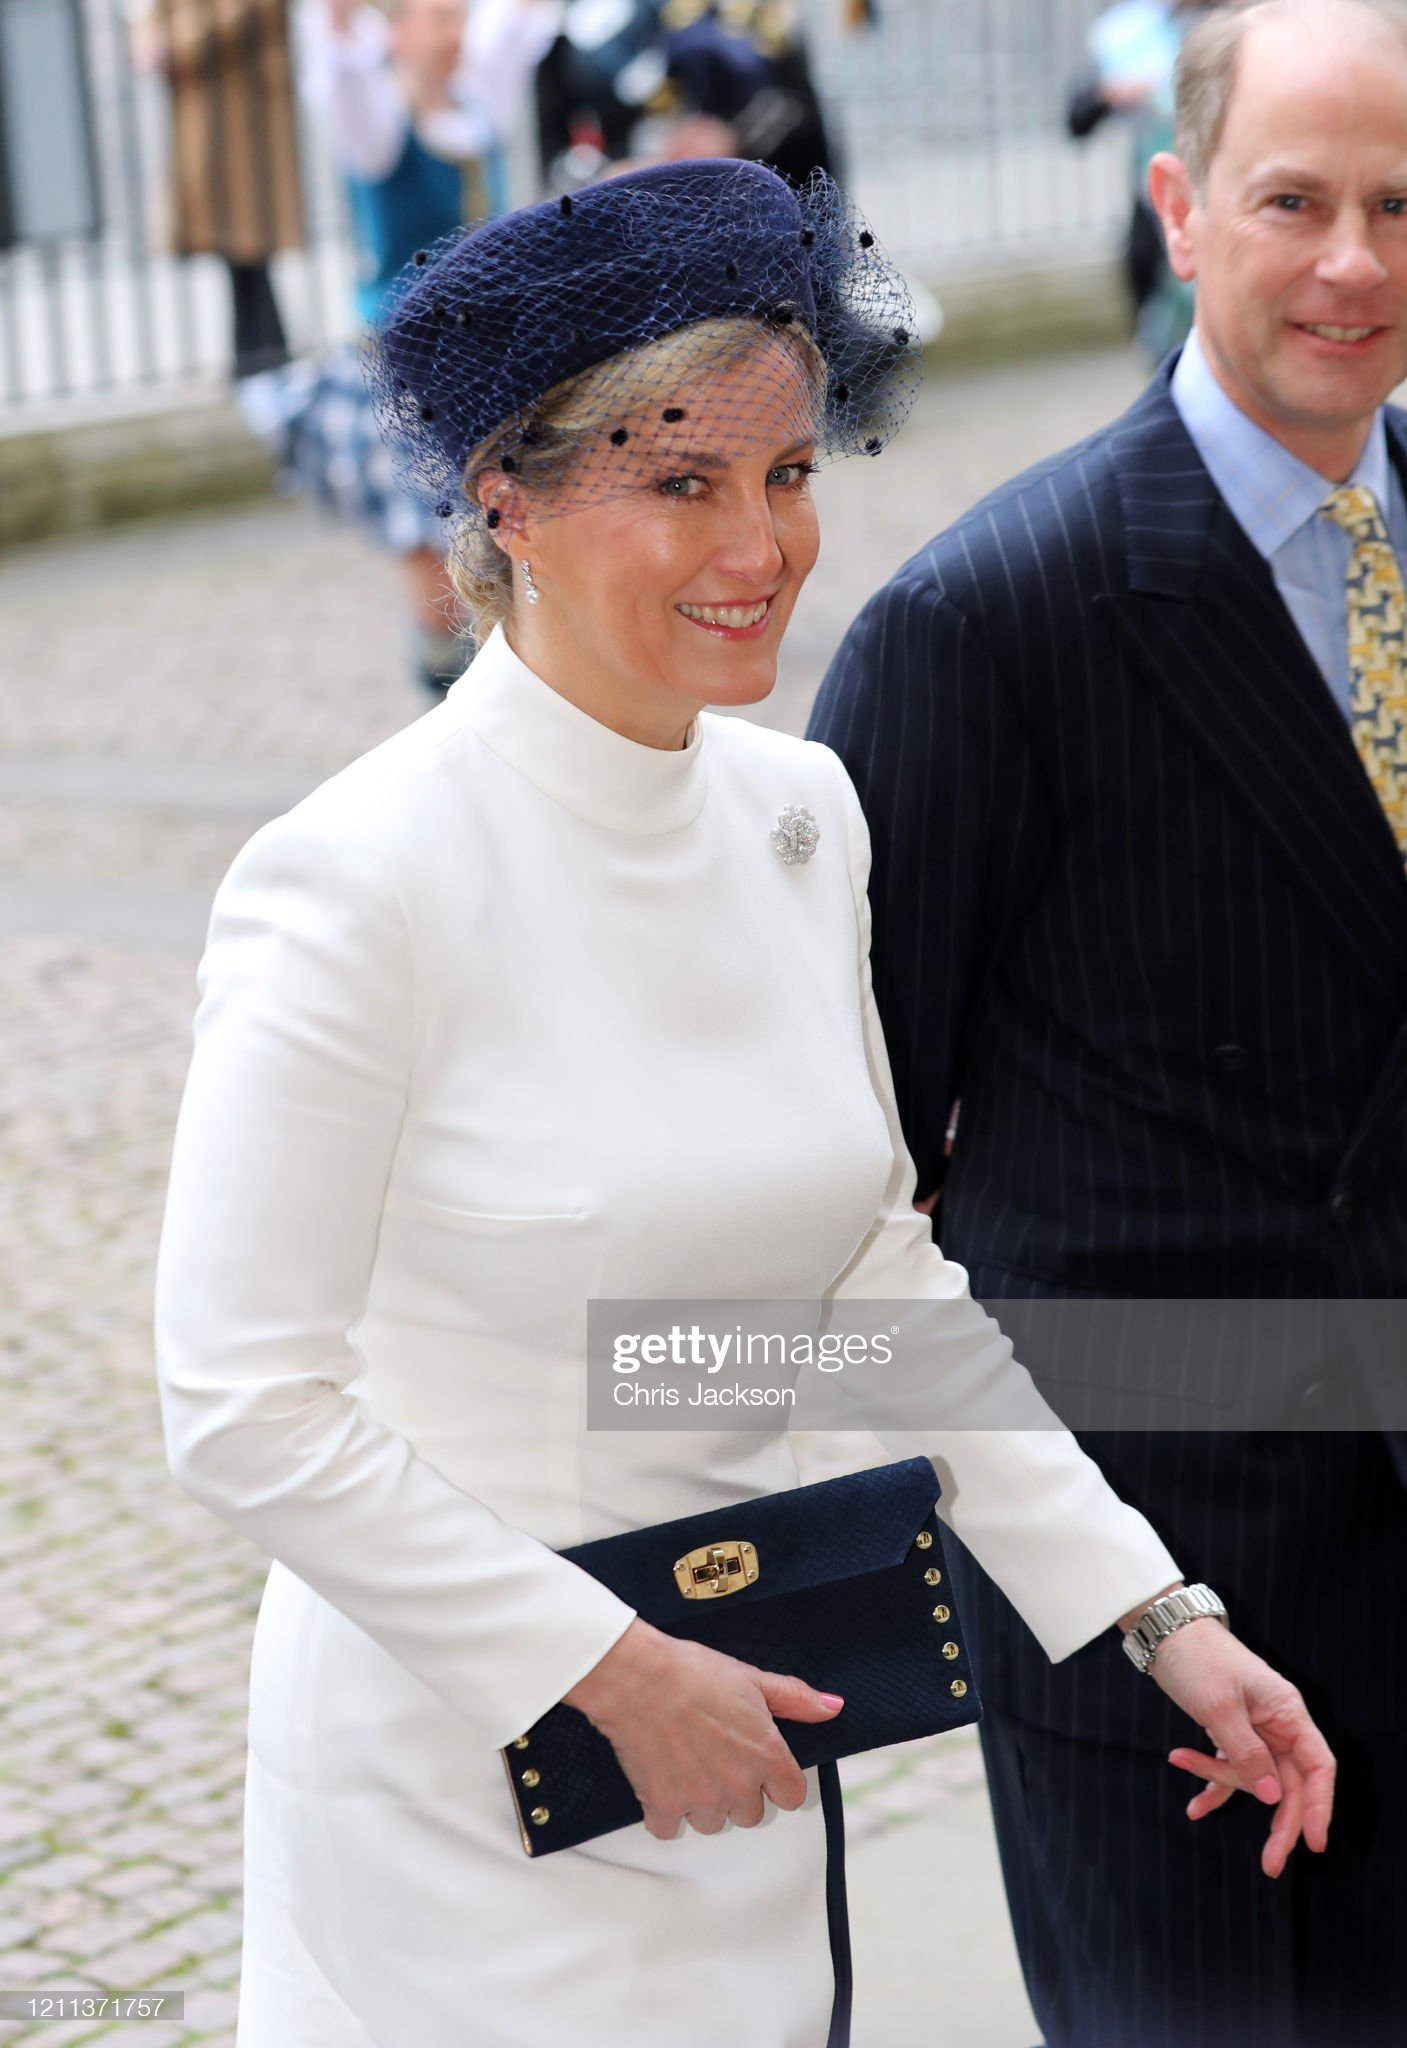 https://media.gettyimages.com/photos/sophie-countess-of-wessex-attends-the-commonwealth-day-service-2020-picture-id1211371757?s=2048x2048